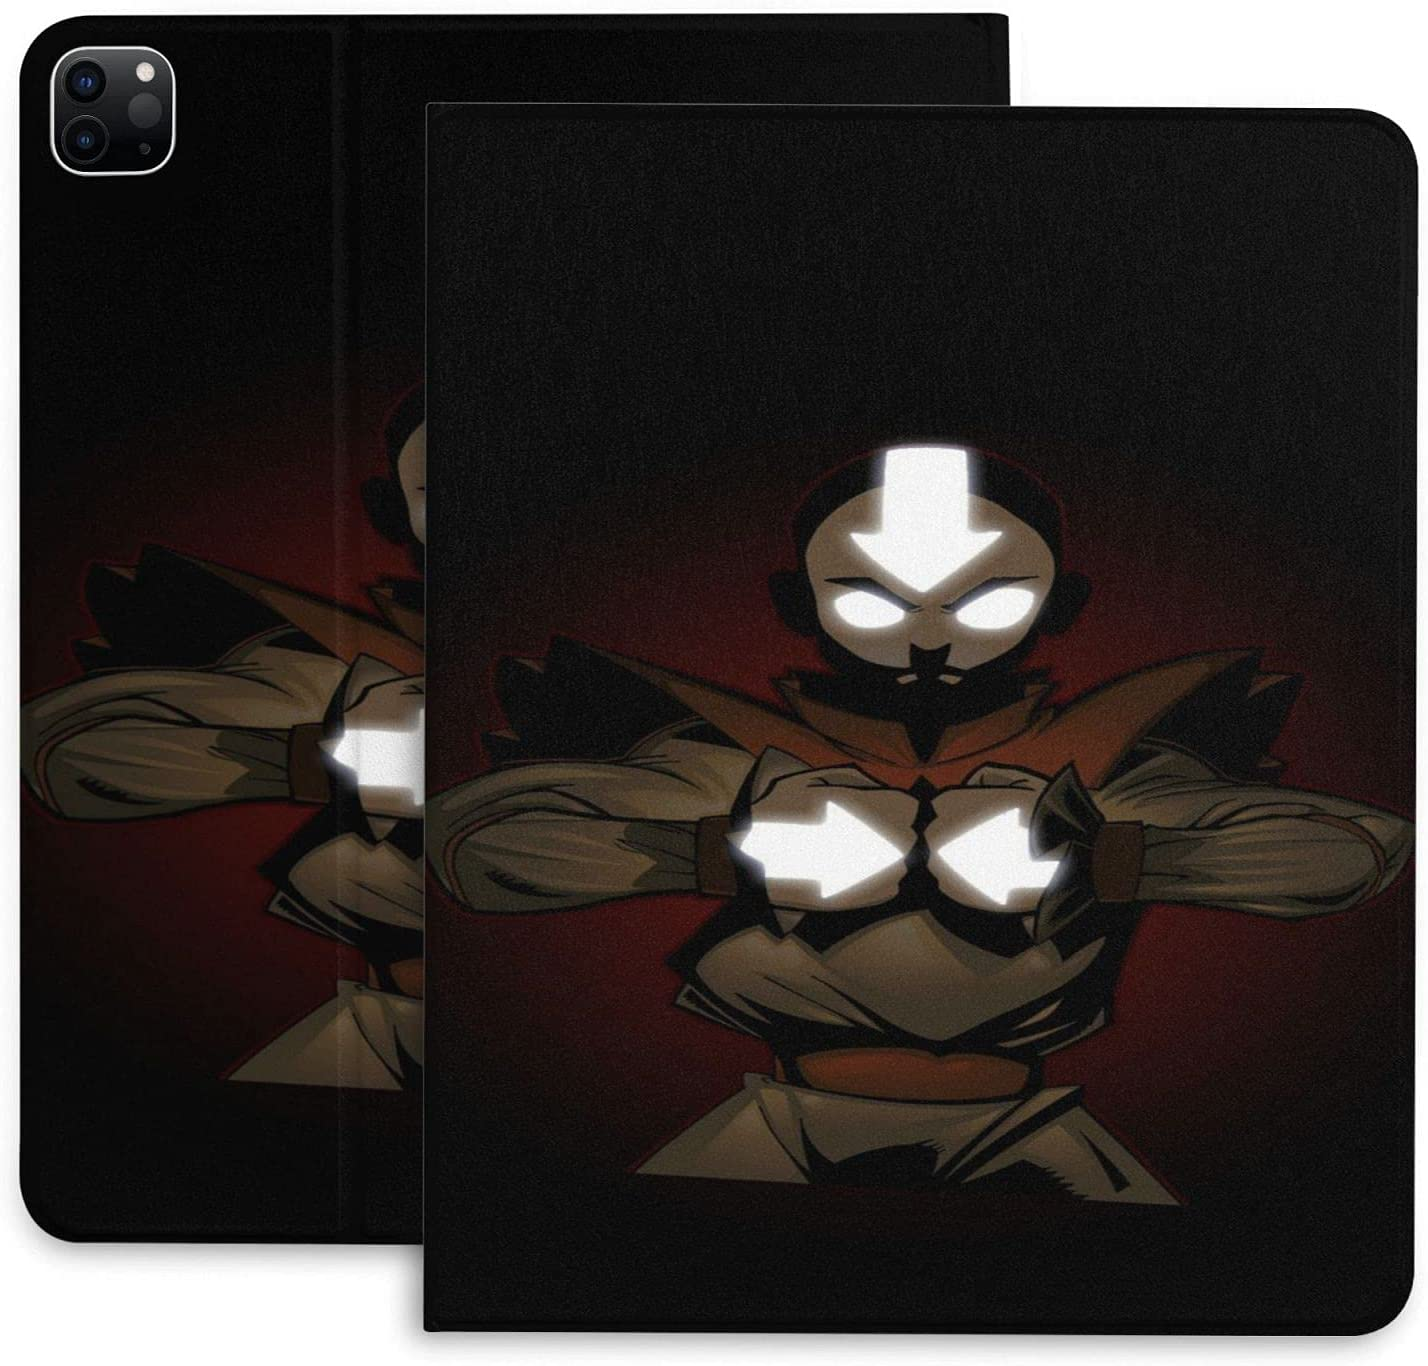 BUERYUZ Applicable Ipad Pro Protective D The Airbender Bargain Last Case Department store